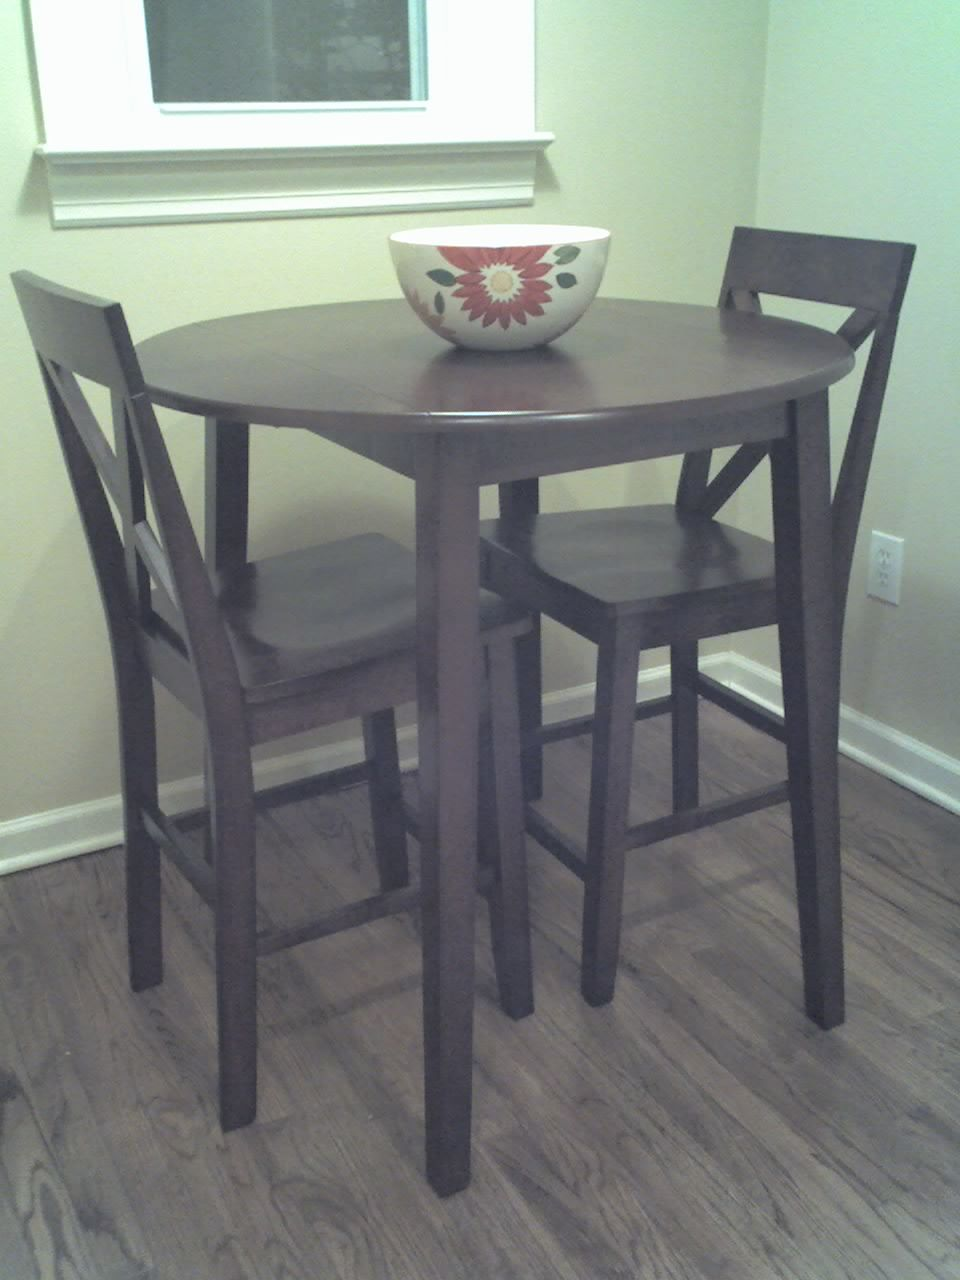 Excellent Tall Kitchen Table With Stools Mahogany In Keepitmovins Spiritservingveterans Wood Chair Design Ideas Spiritservingveteransorg